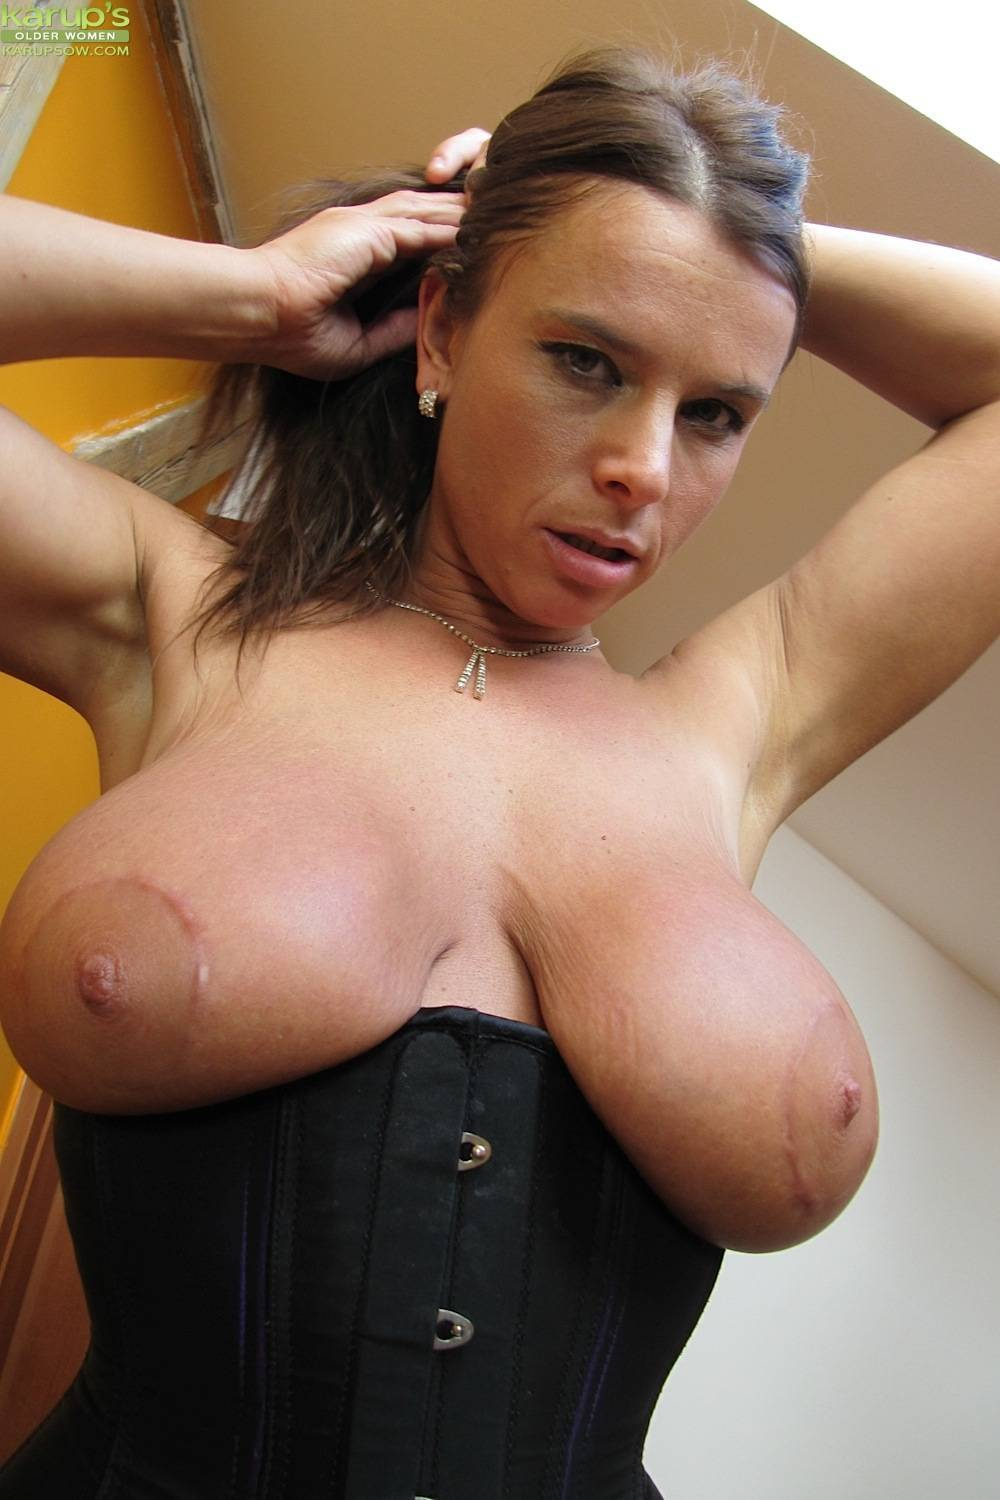 Susanne has a huge tits and a big pussy that she loves to expose at Karupsow